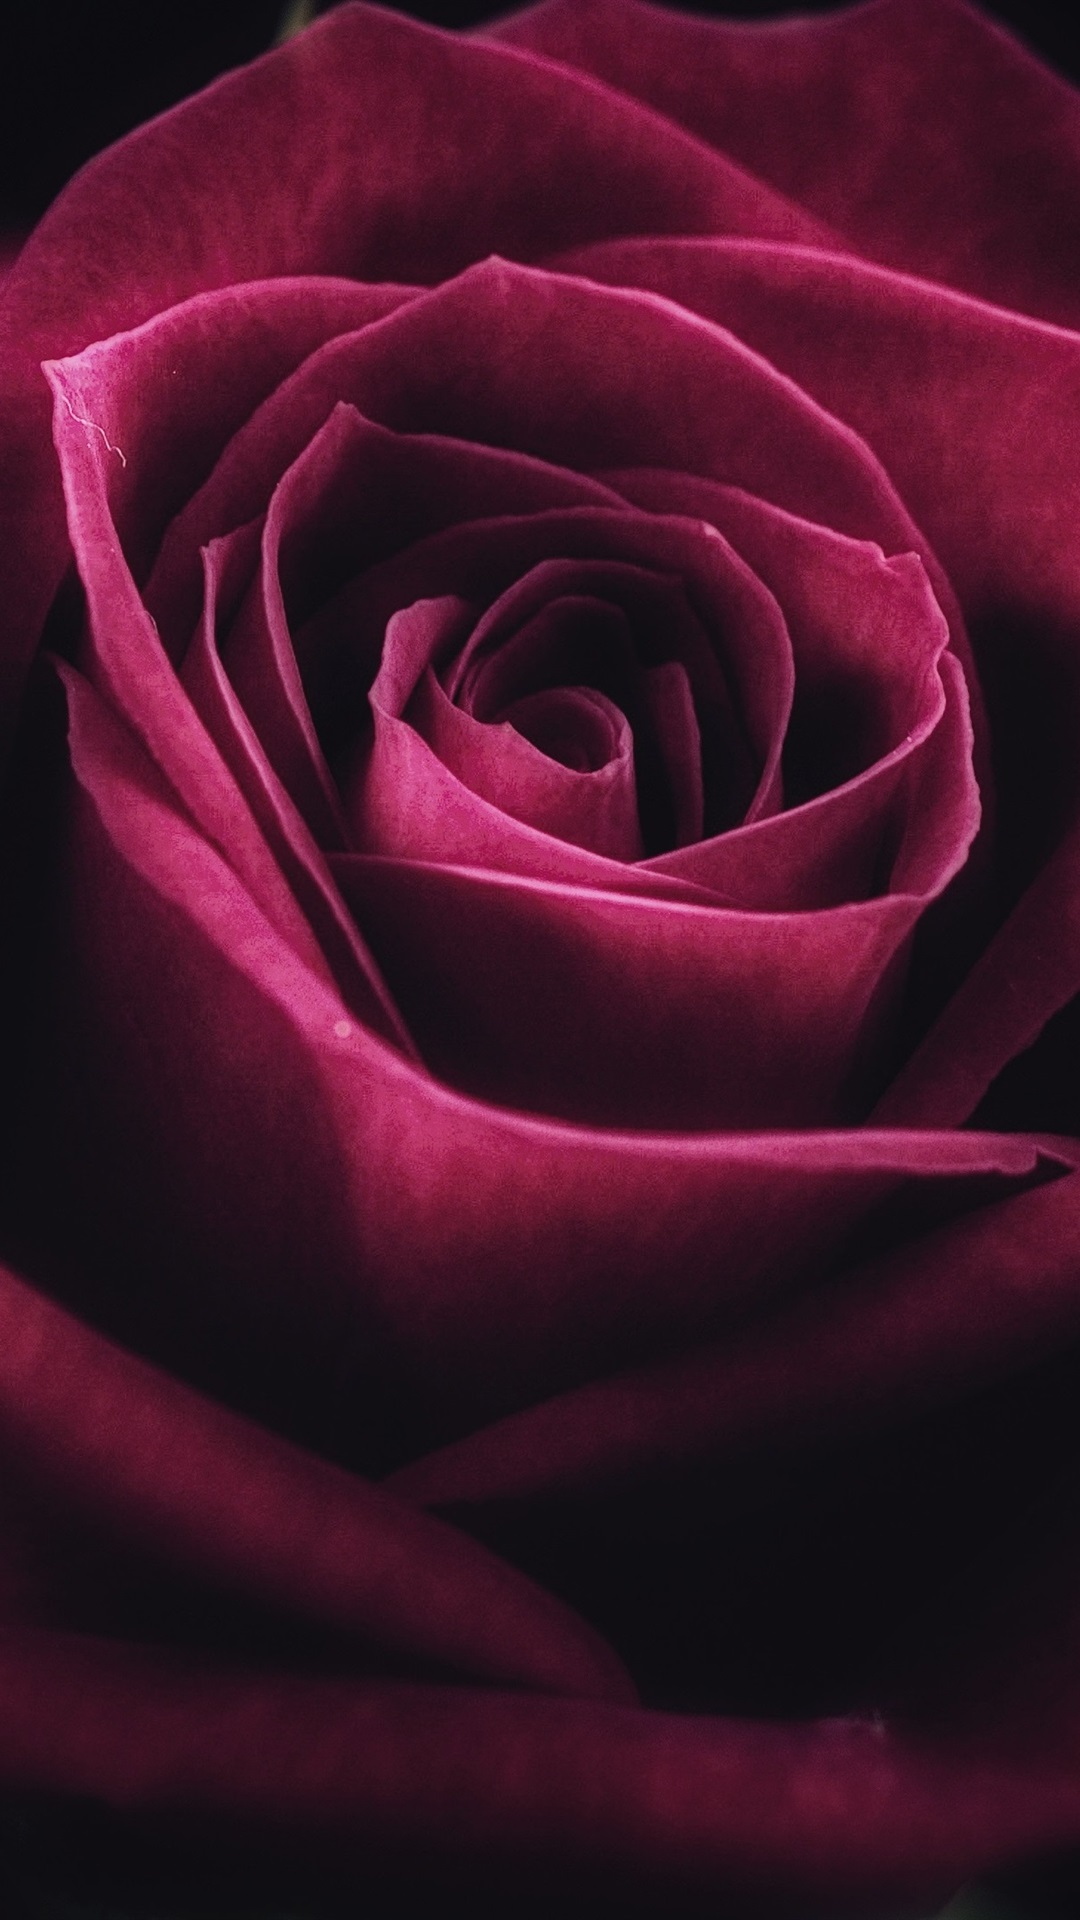 Red Rose Close Up Petals Flower 1080x1920 Iphone 8 7 6 6s